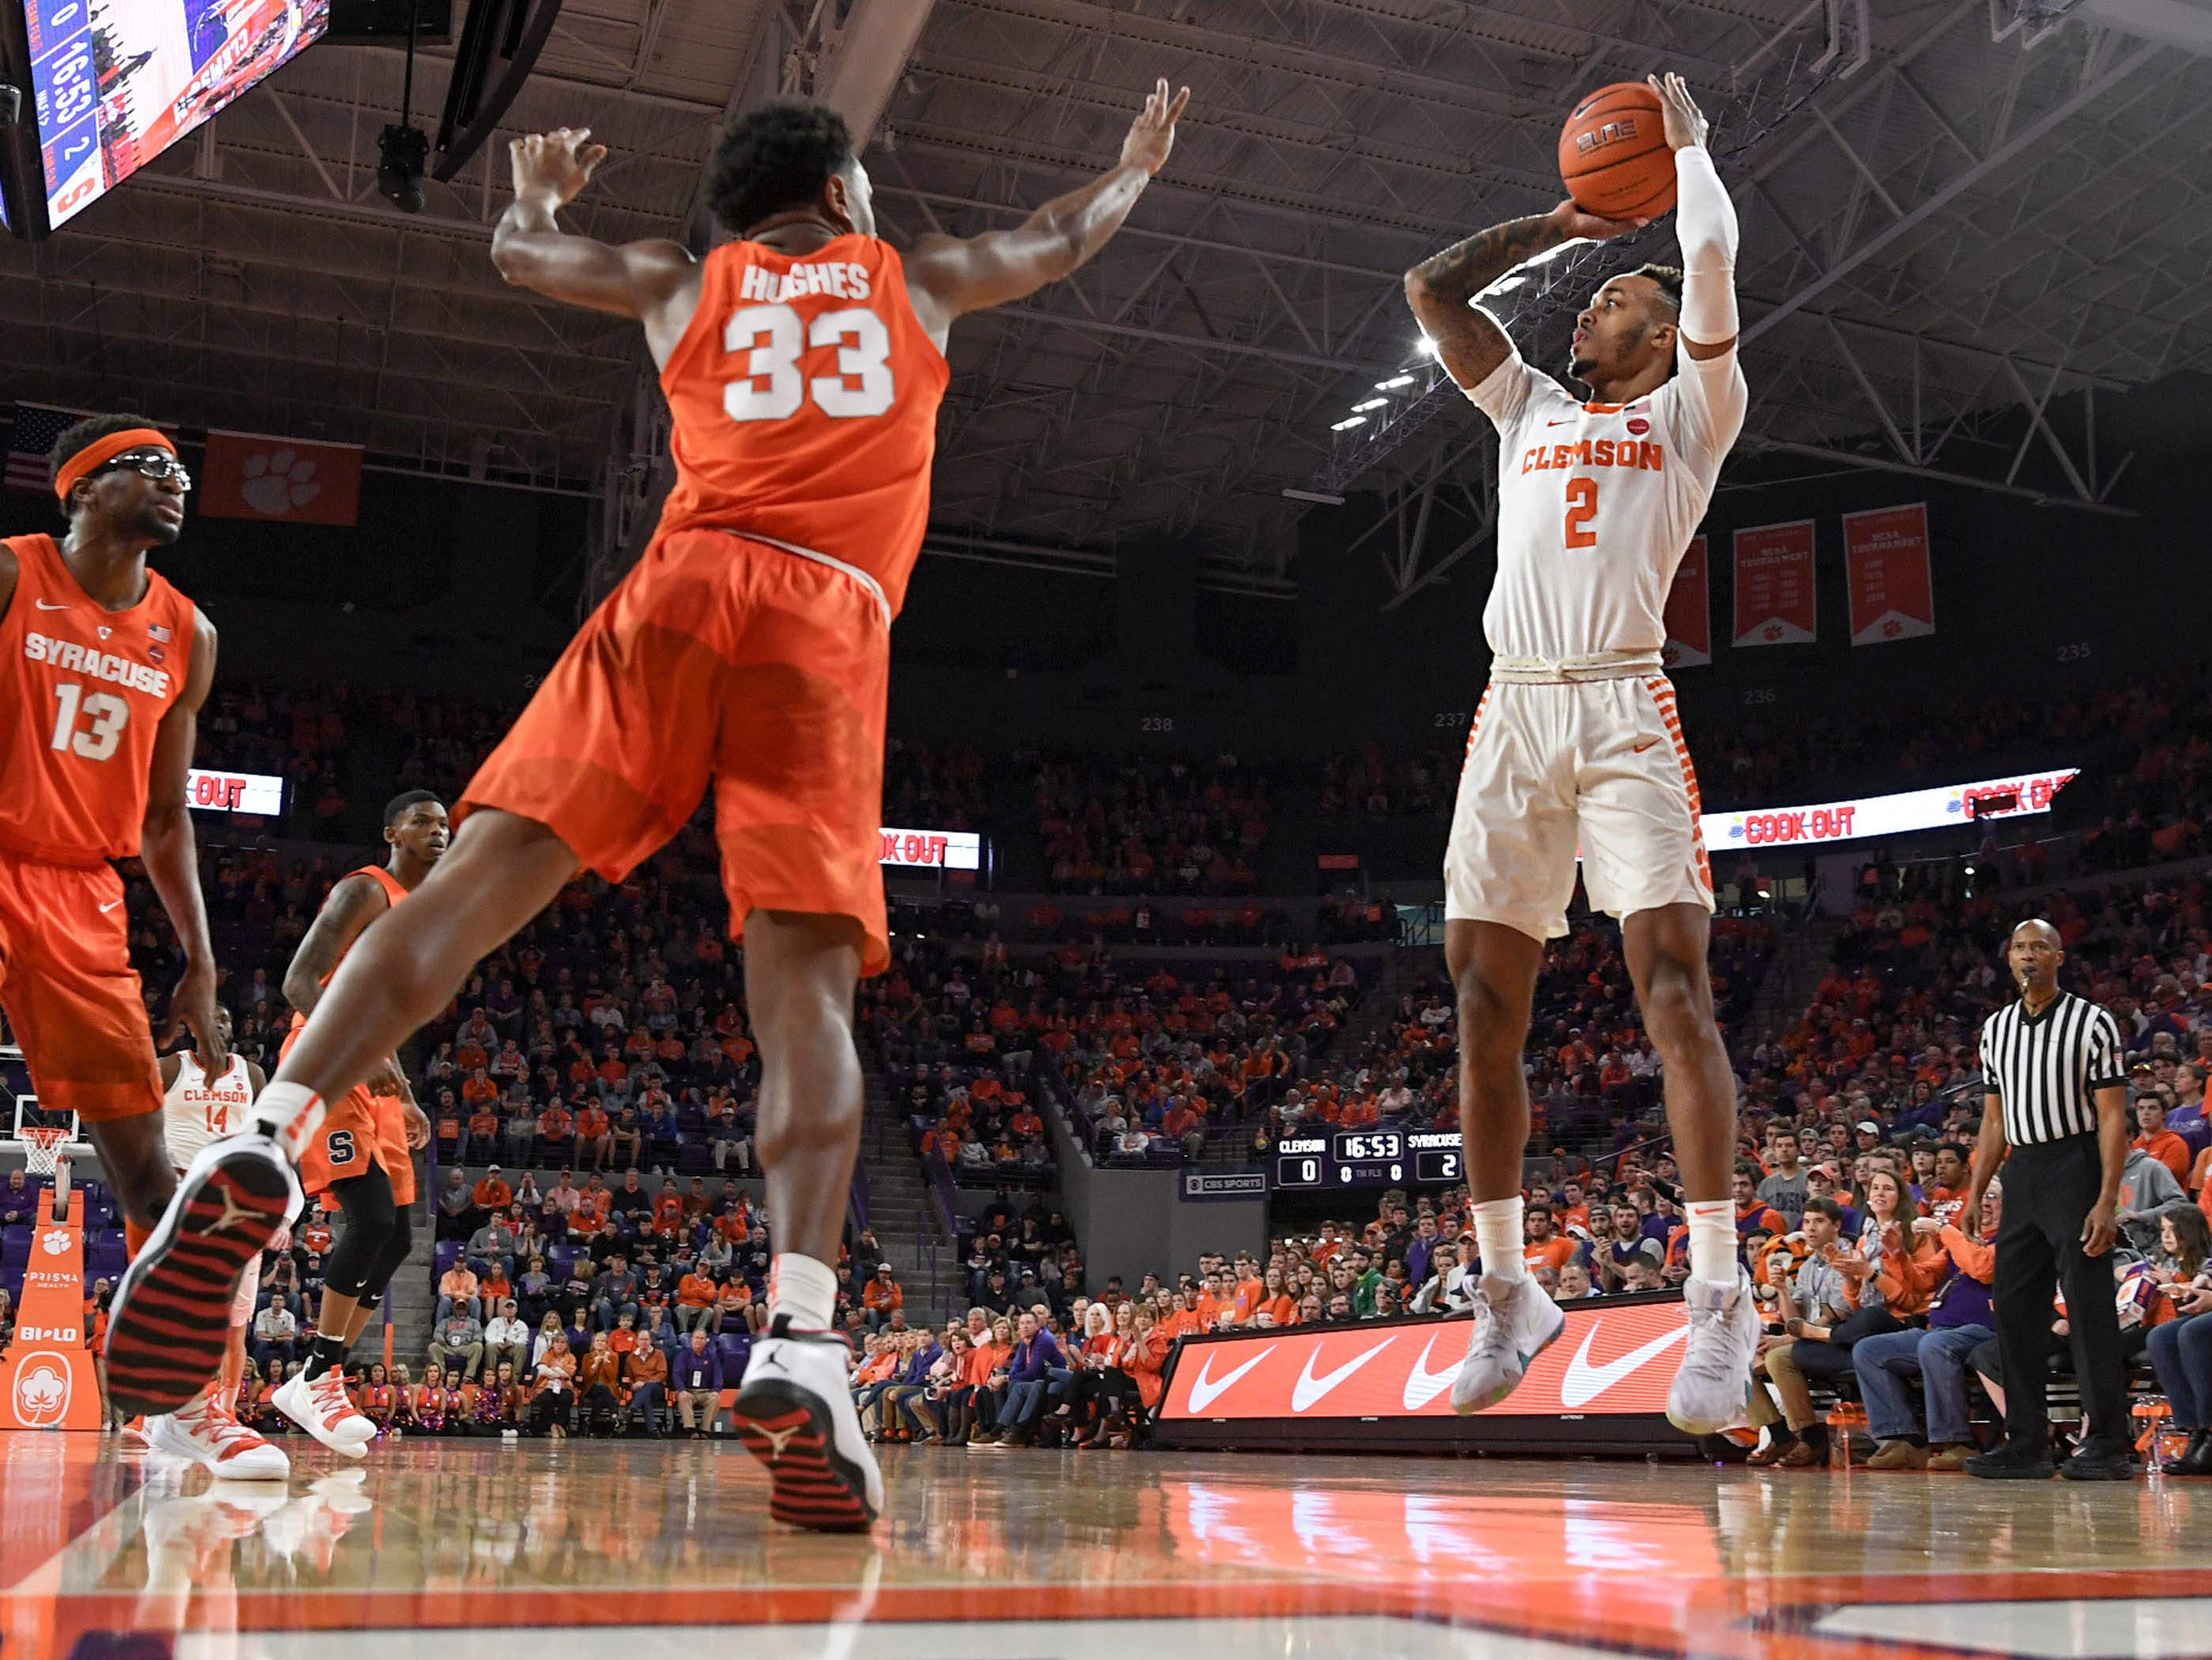 Clemson guard Marcquise Reed (2) shoots near Syracuse forward Elijah Hughes(33) during the first half in Littlejohn Coliseum in Clemson Saturday, March 9, 2019.